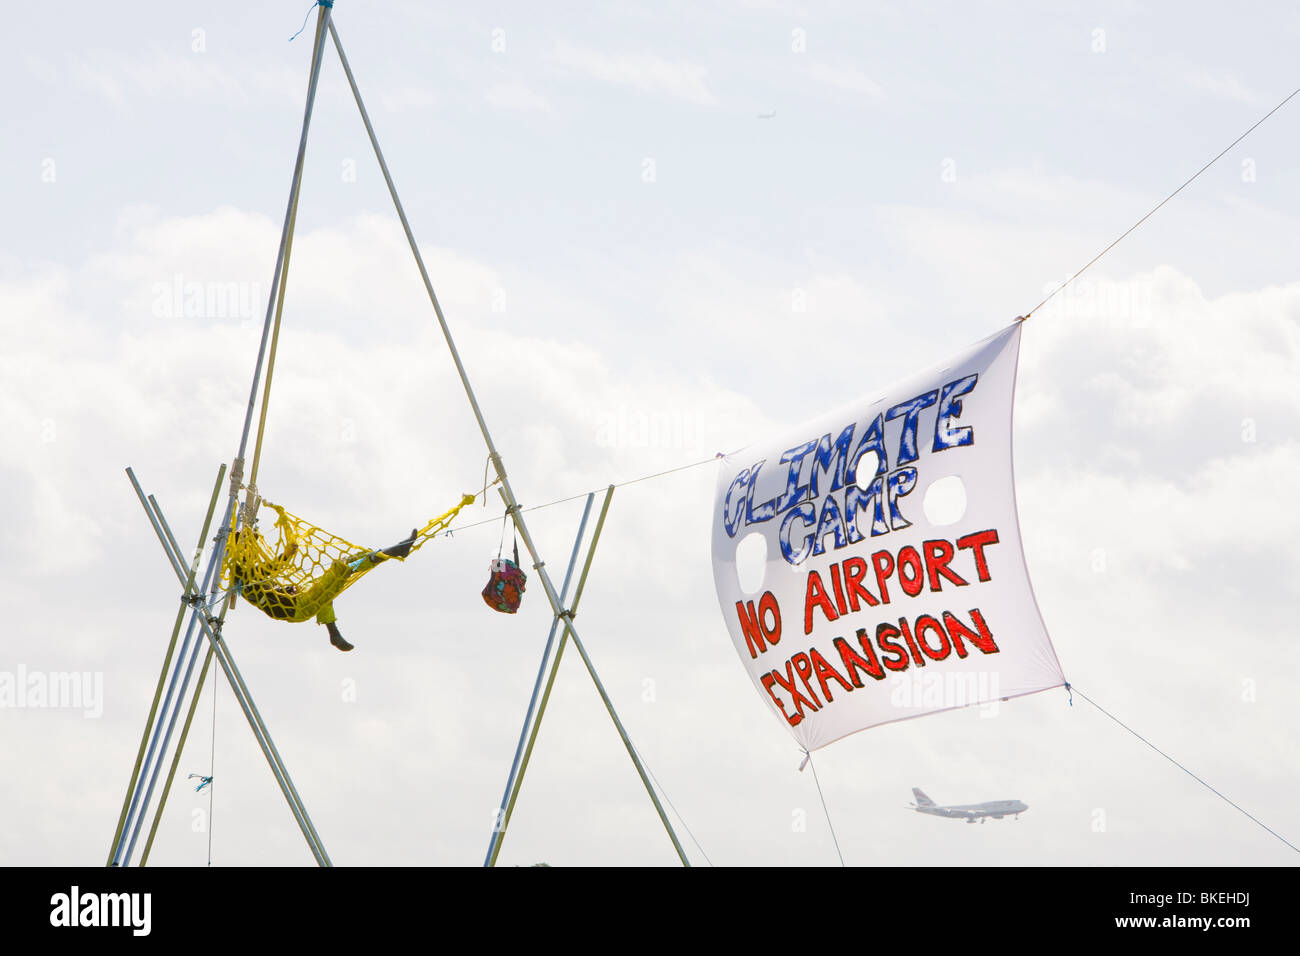 The Climate camp protest against airport development at Heathrow at Sipson that would be demolished for the third - Stock Image